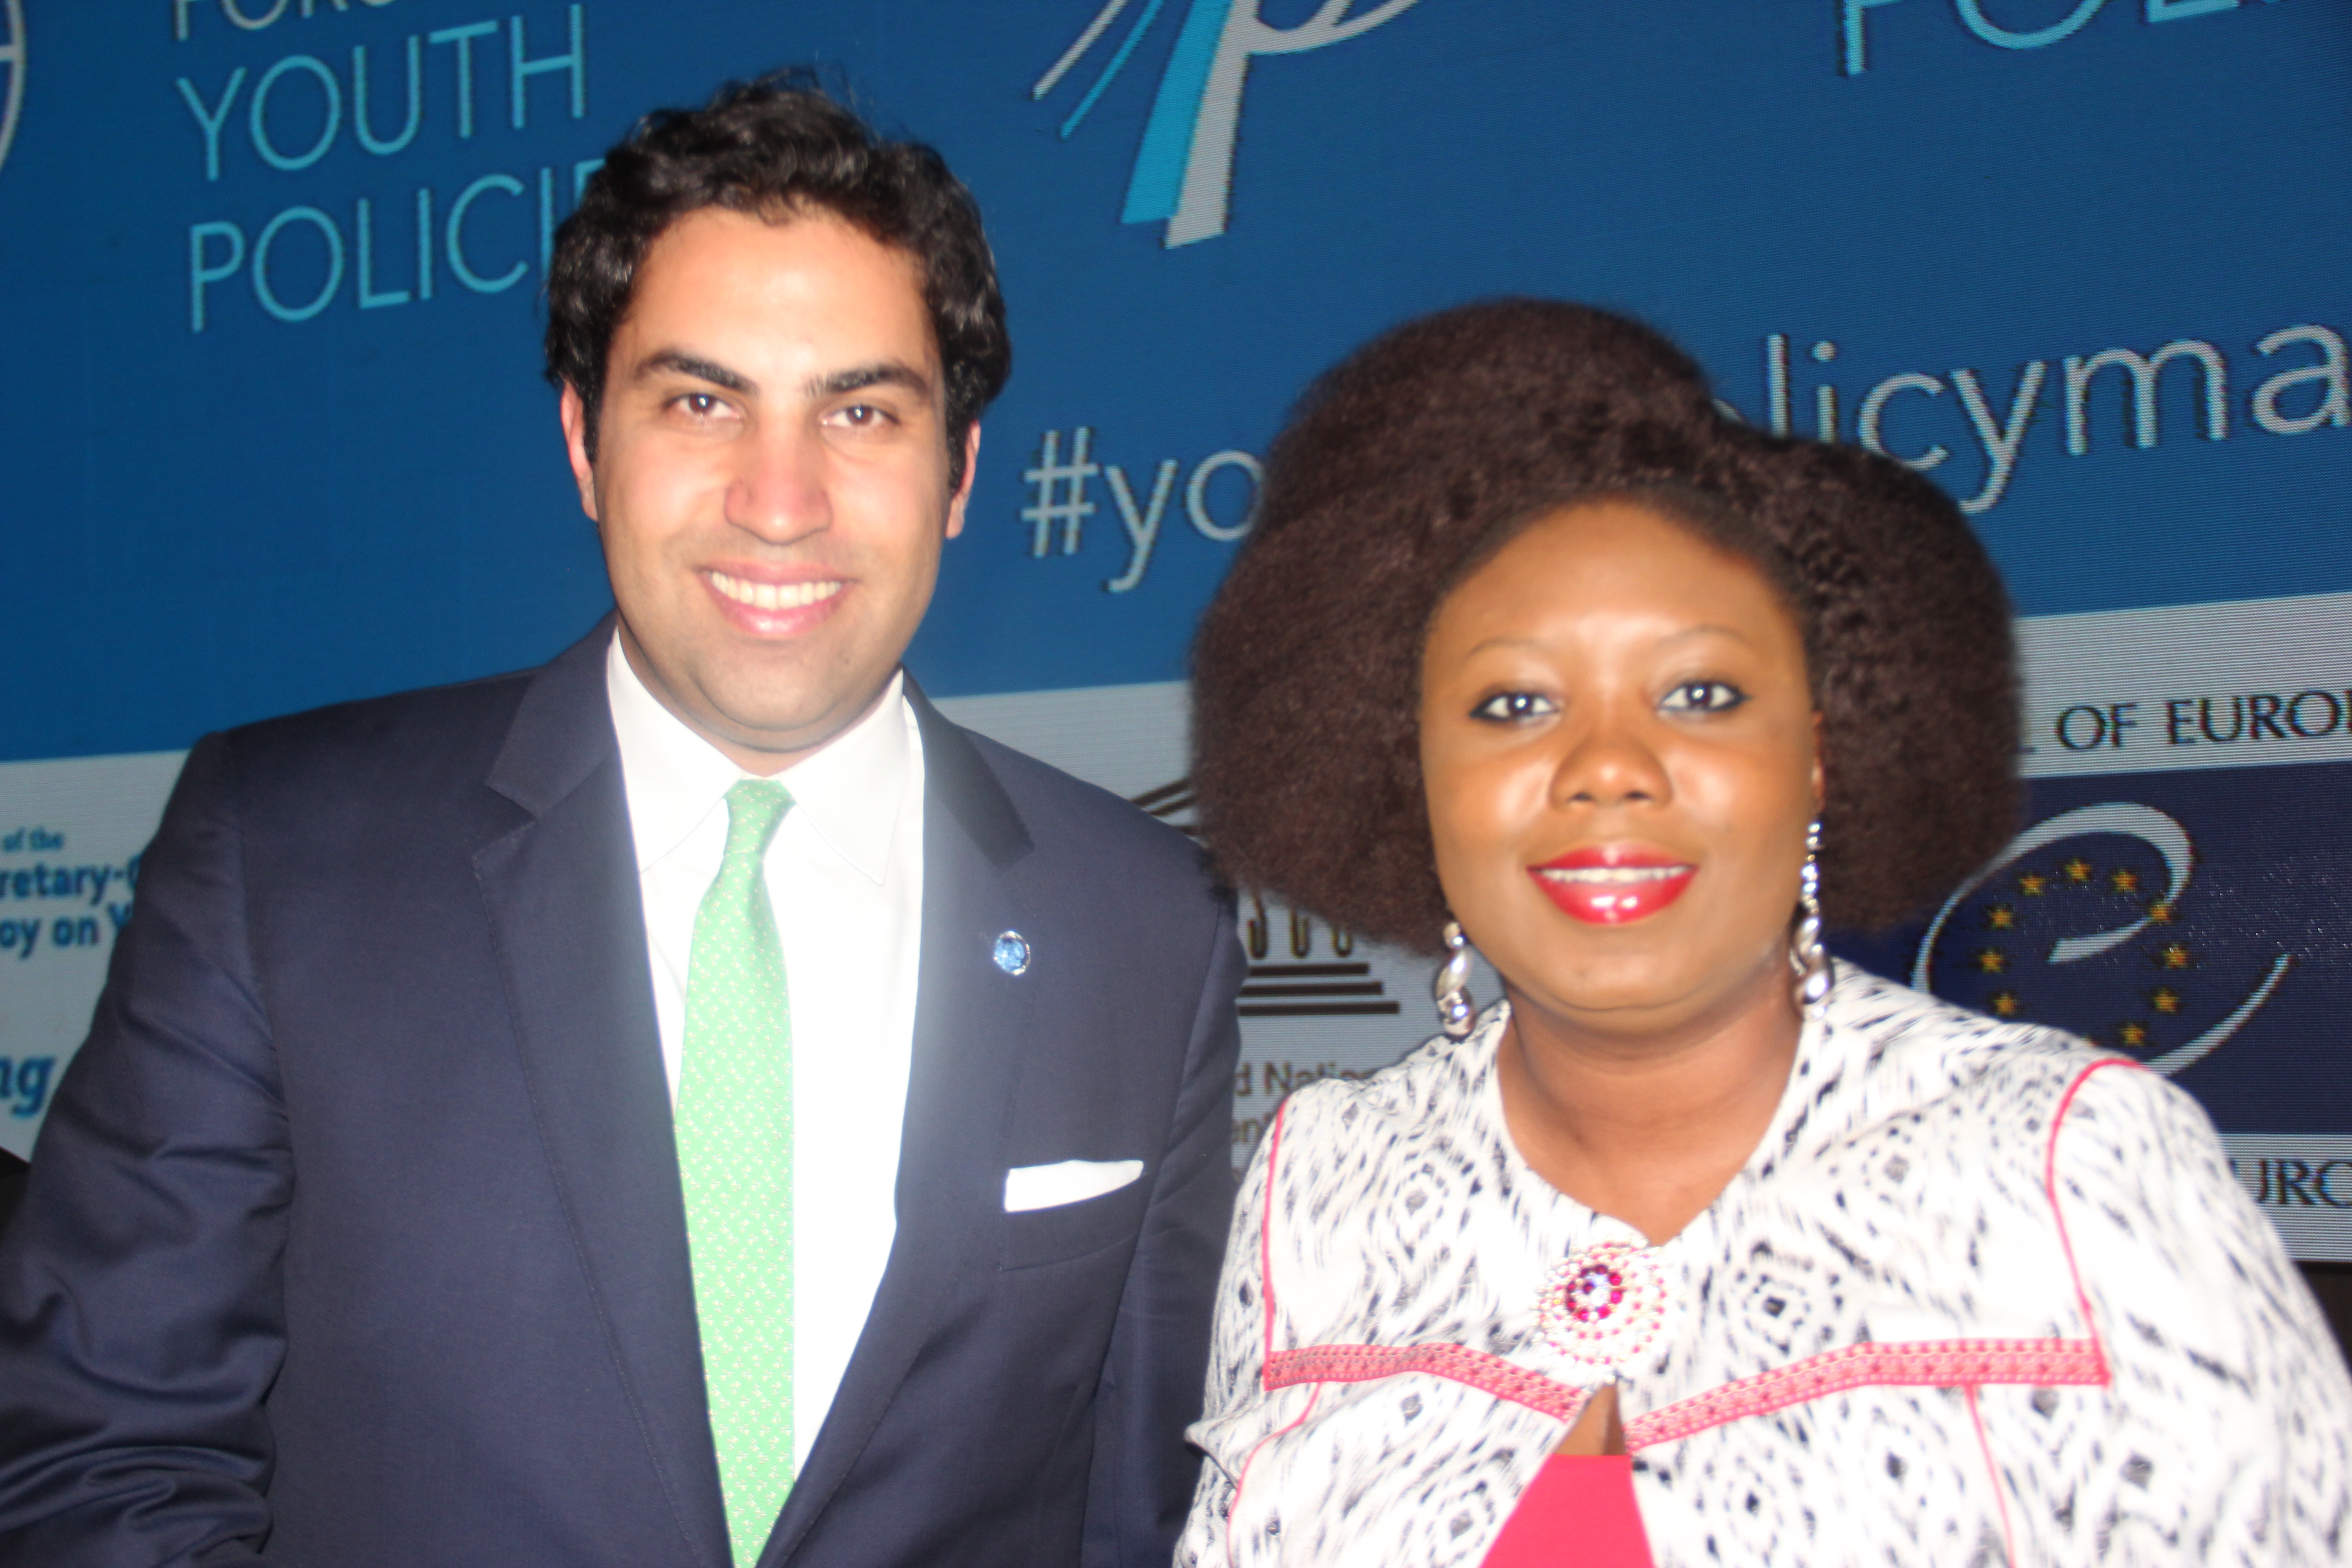 Ahmad Alhendawi my appearance at the first united nations global forum on